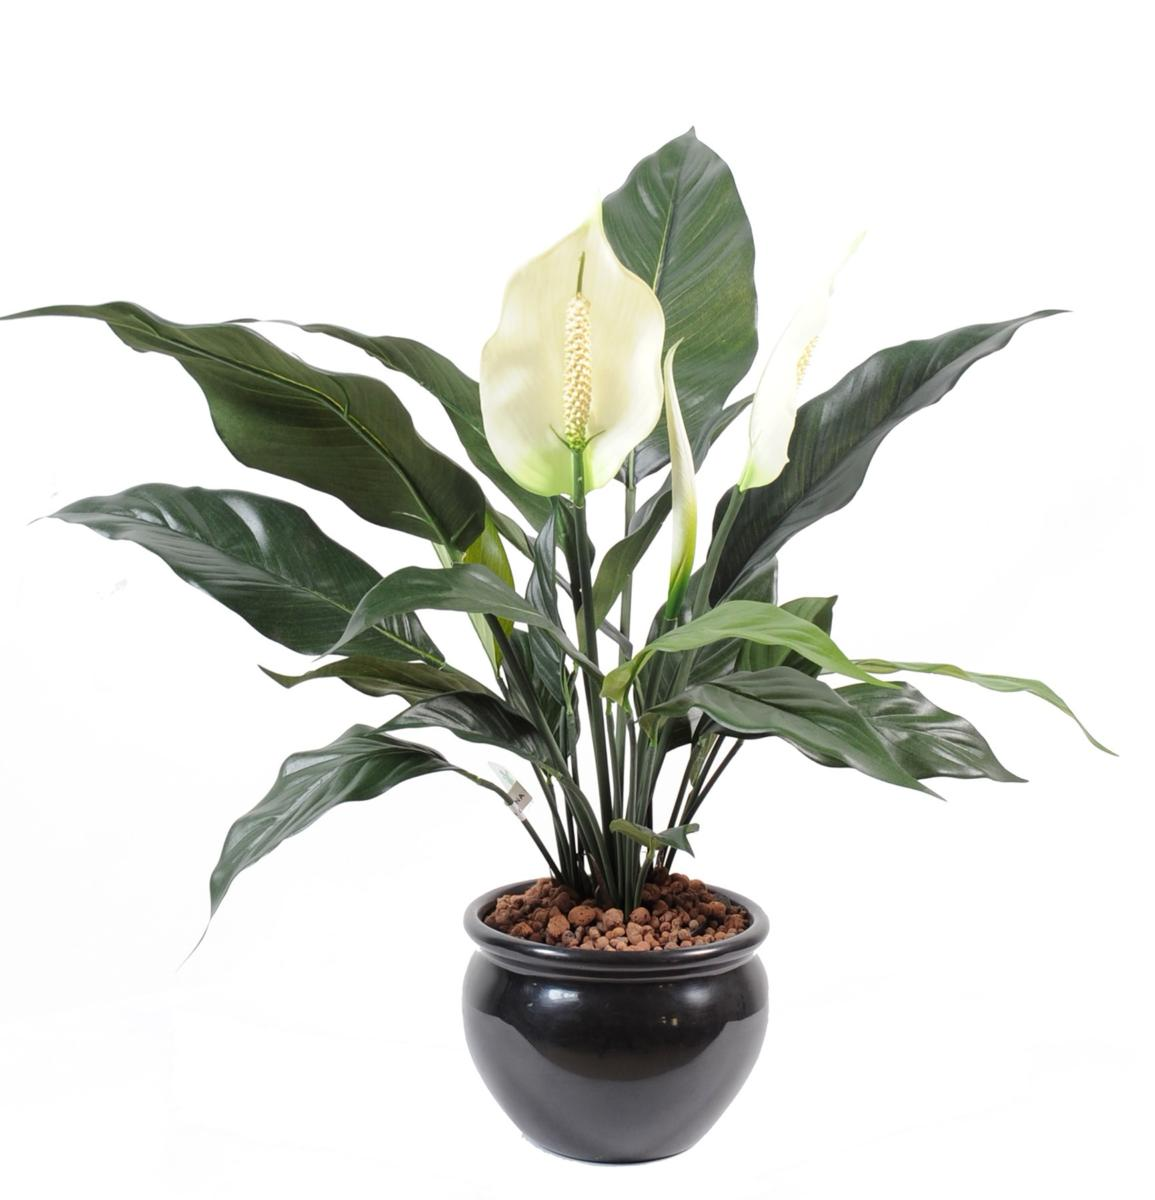 Plante artificielle fleurie spathiphylium en pot for Plantes fleuries exterieur en pot